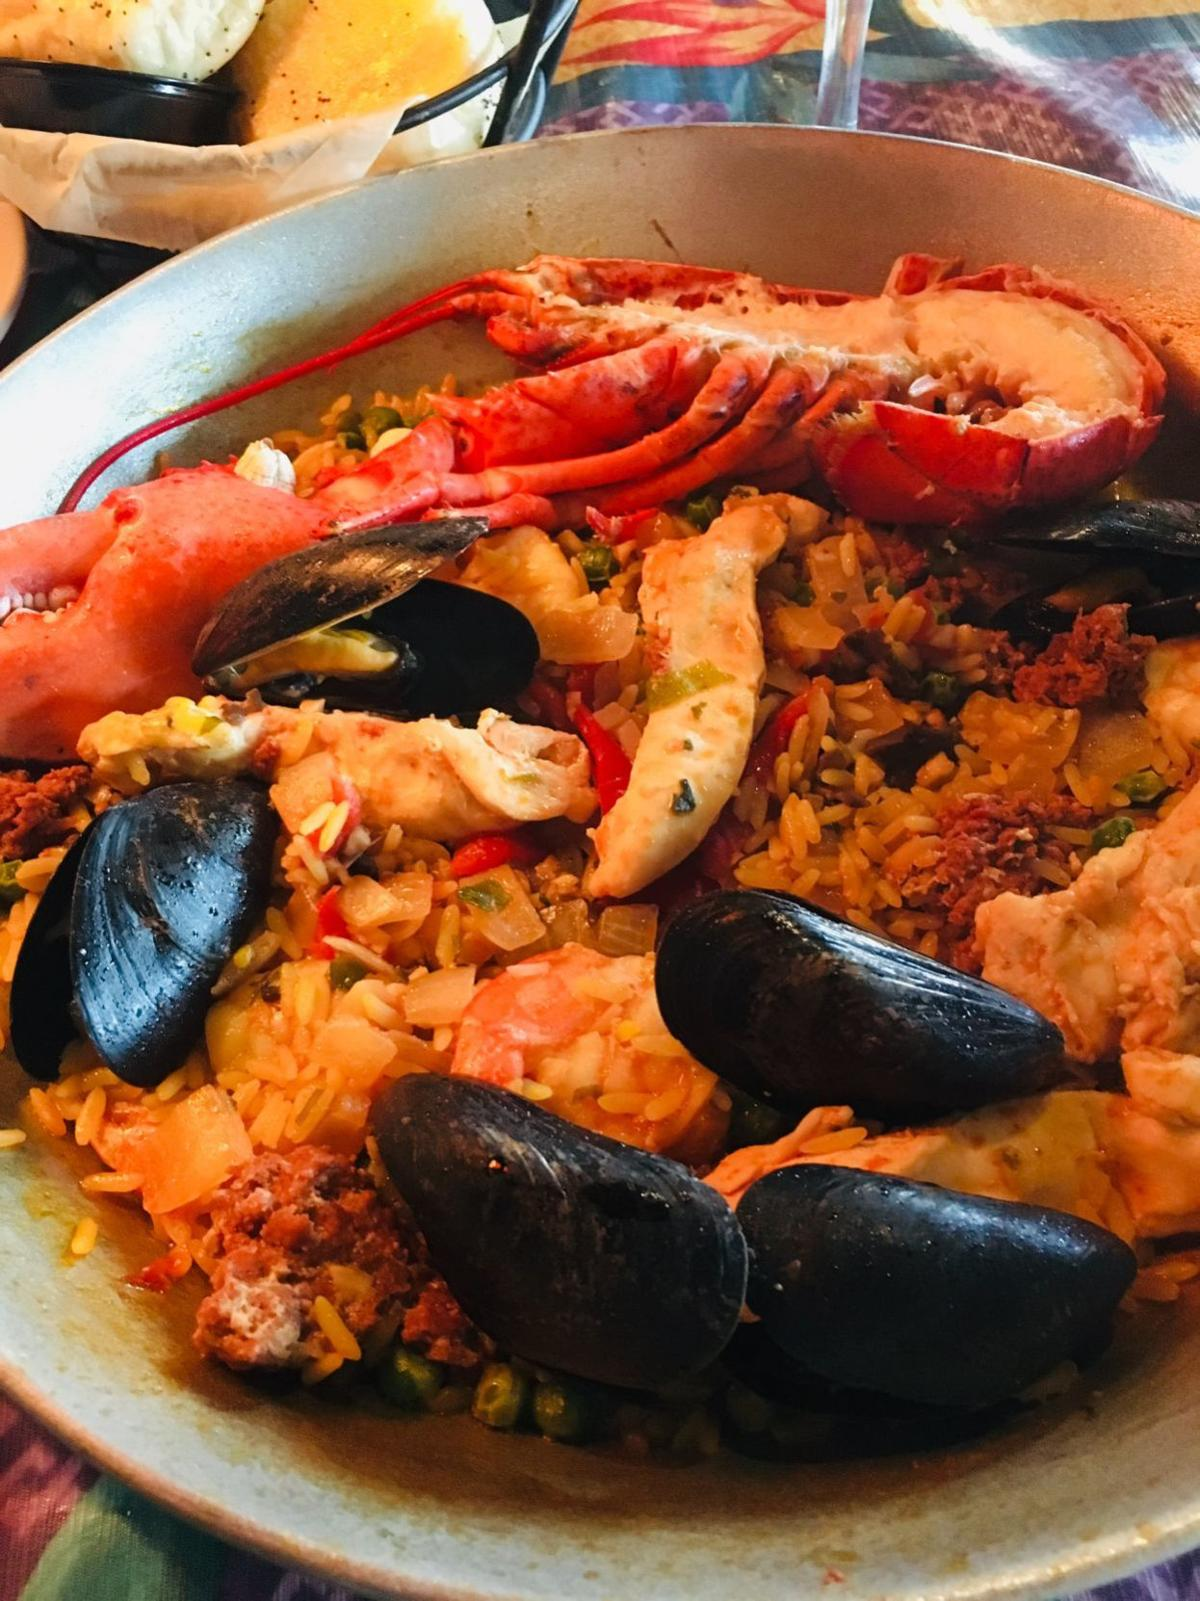 20190731-gm-food-guy-paella2-IMG_4485.jpg